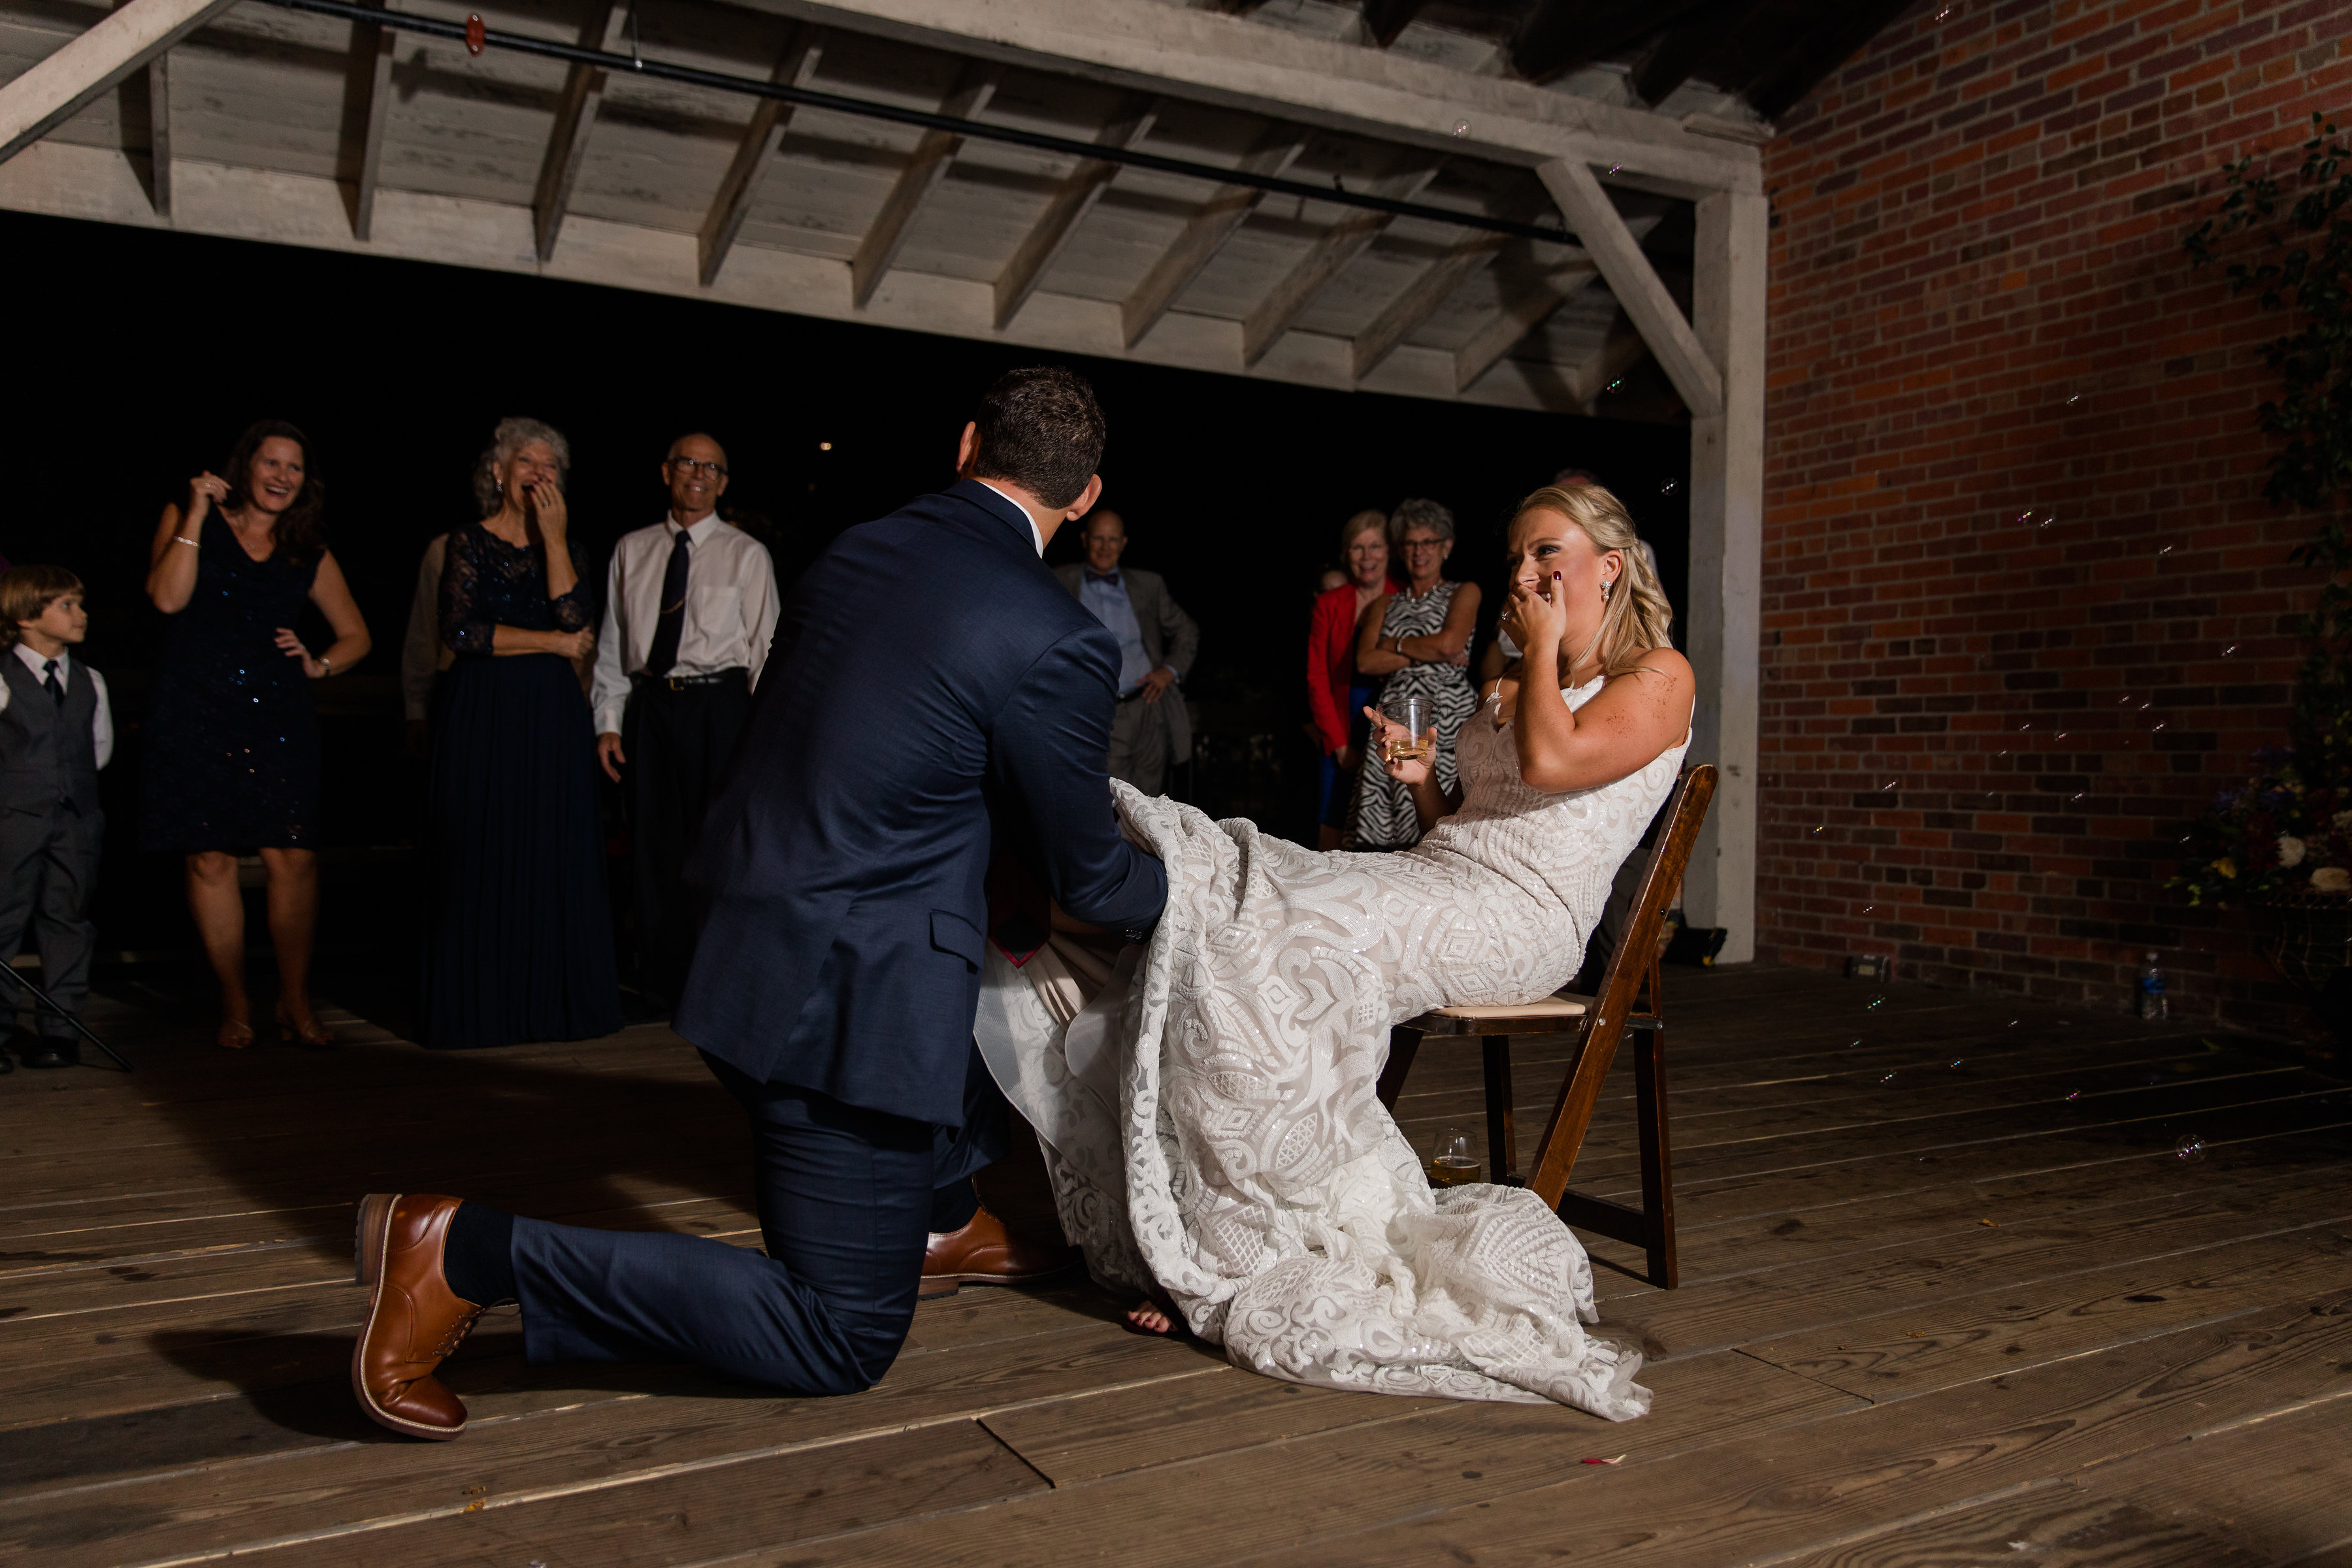 Songs For Wedding Reception.31 Garter Toss Songs For Your Wedding Reception All Around Raleigh Dj